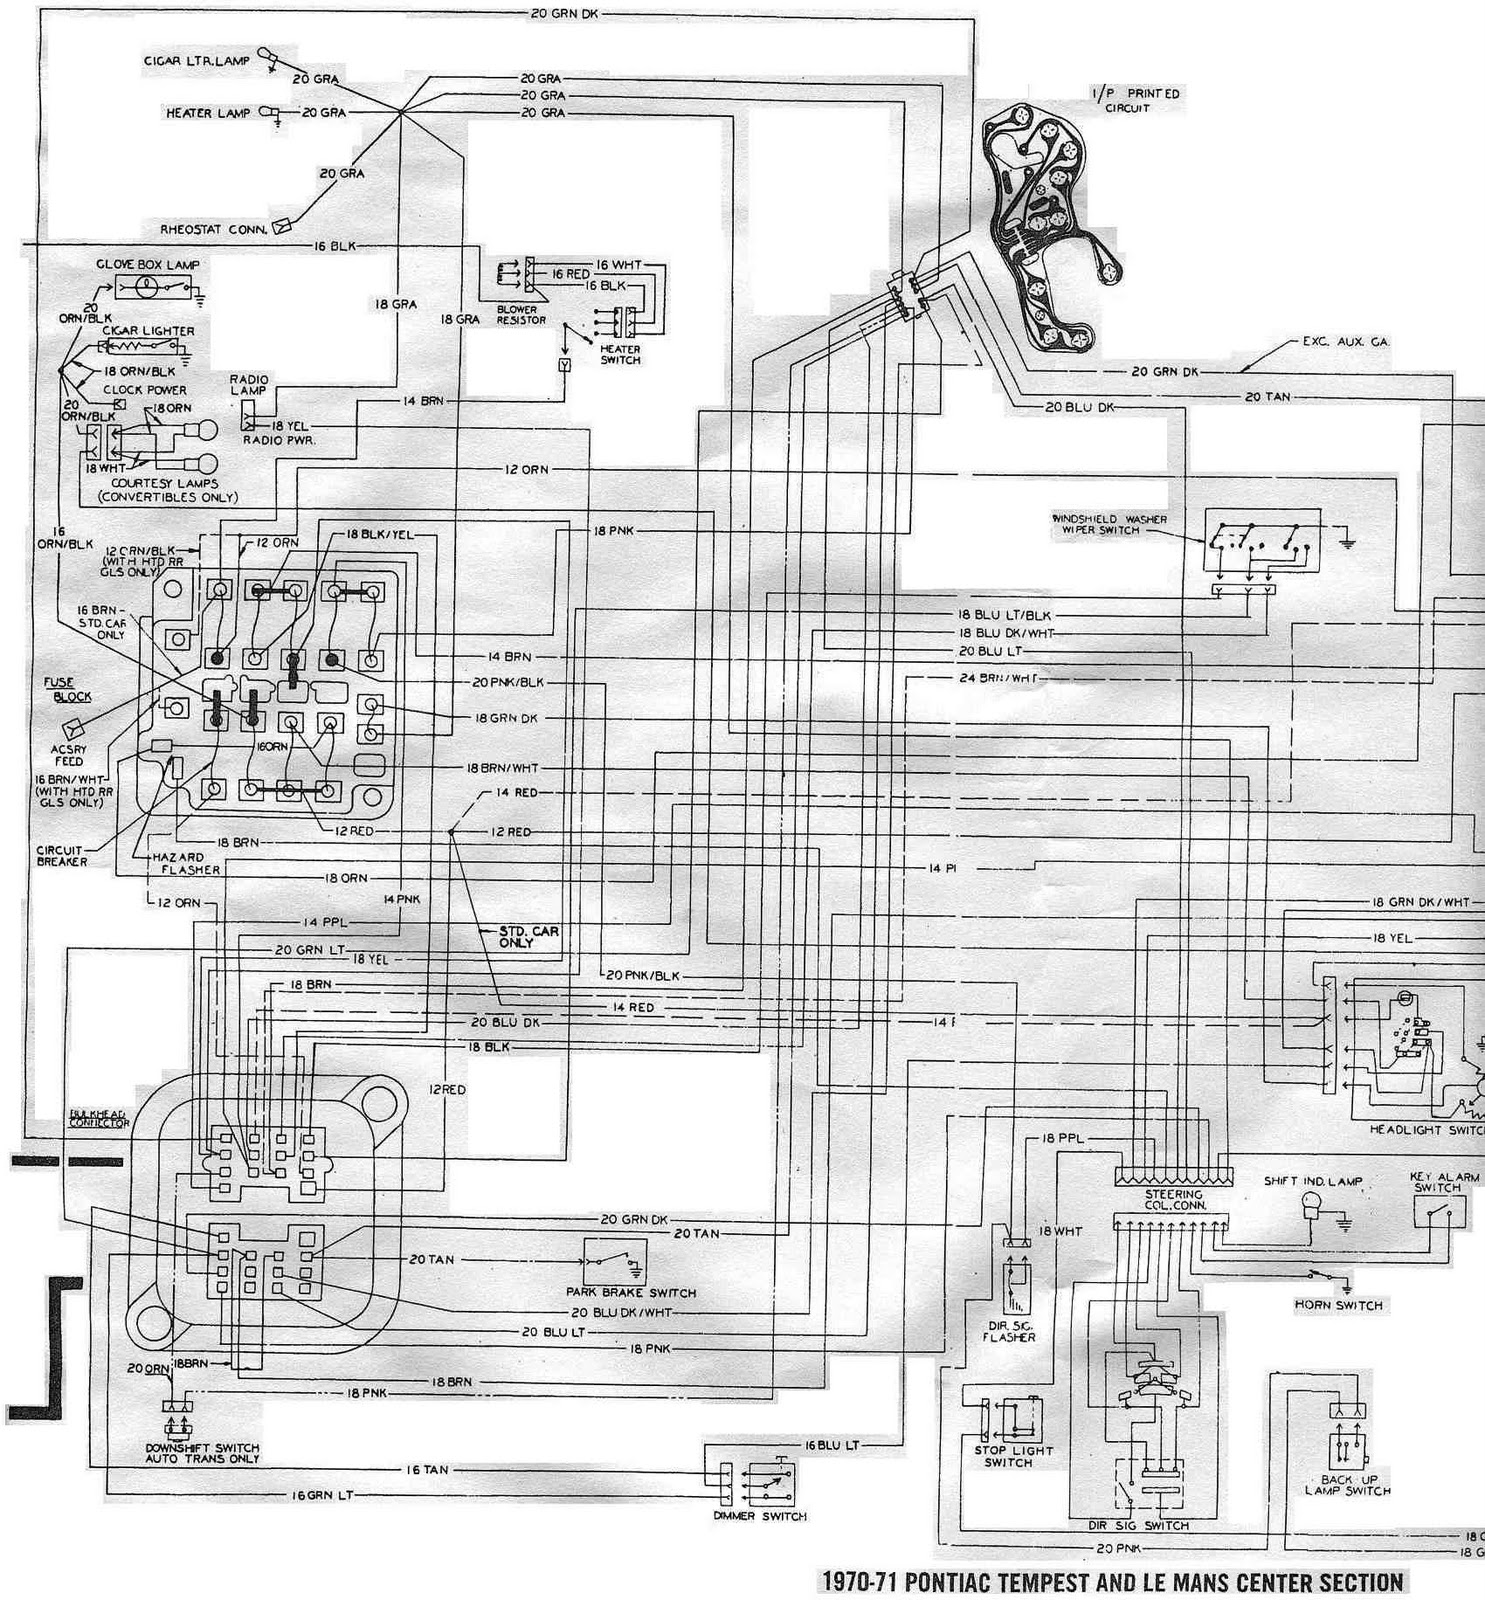 1970 Pontiac Lemans Wiring Diagram Books Of Wiring Diagram \u2022 1972 Pontiac  Lemans Wiring Diagram 1972 Pontiac Lemans Wiring Diagram